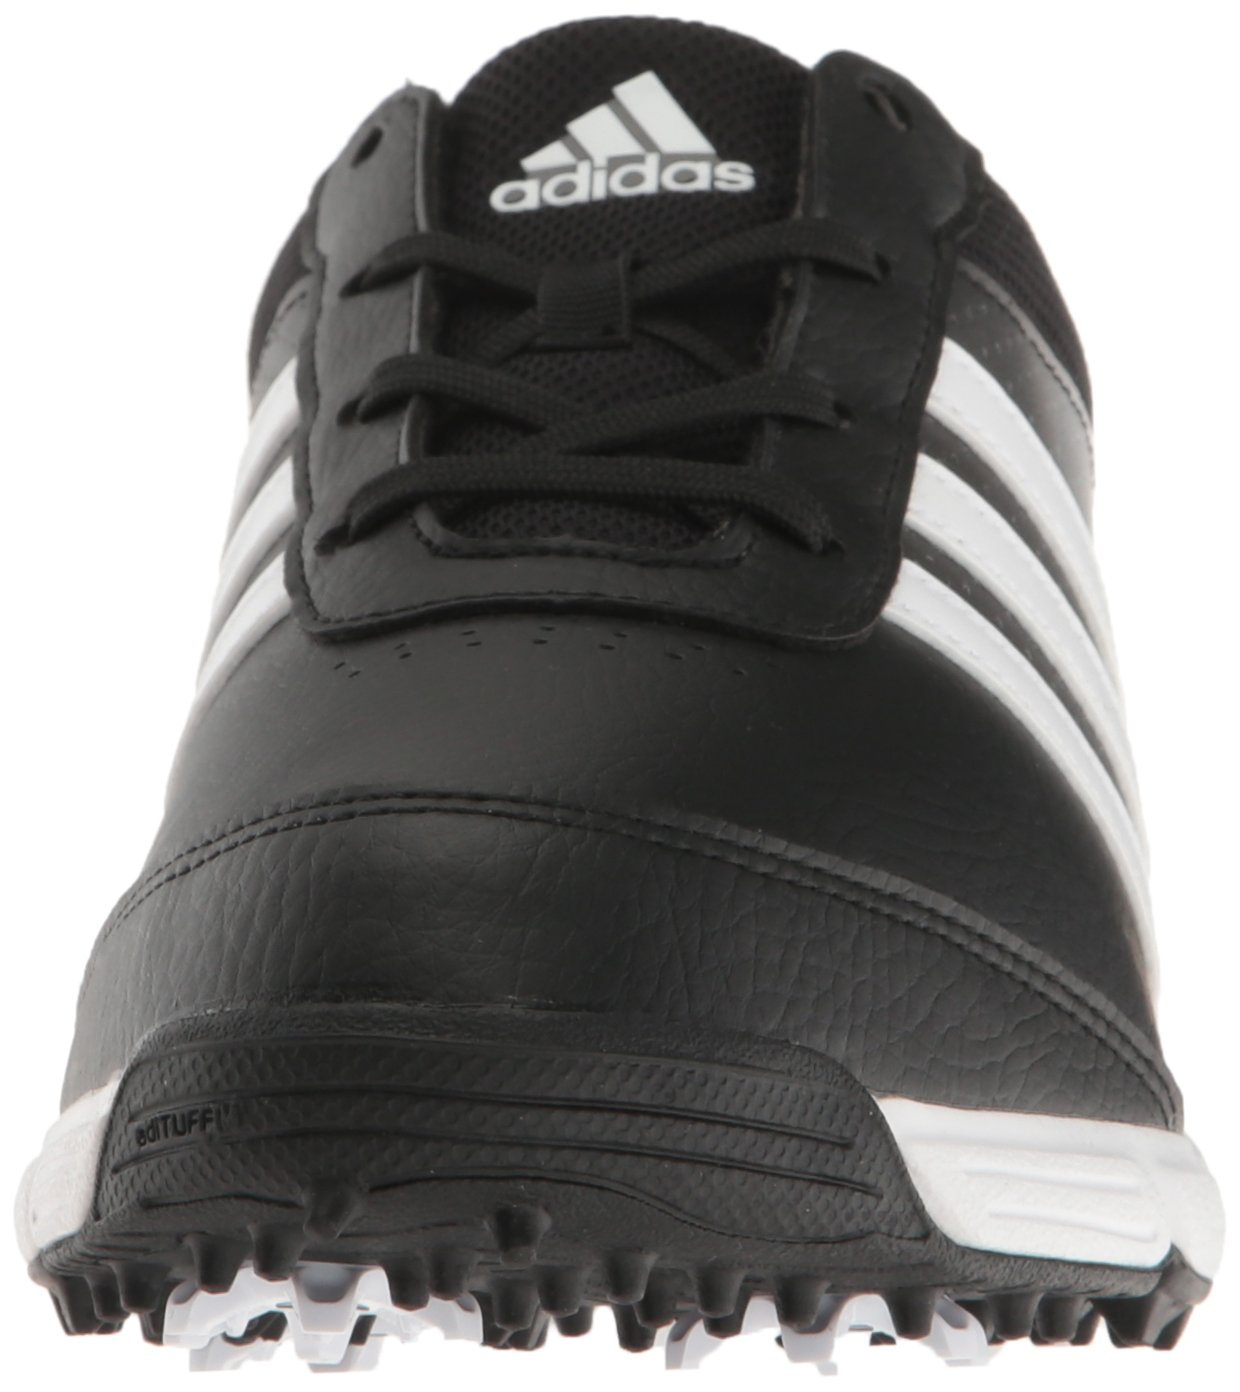 adidas Ftwwht/Ft Women's W Tech Response Ftwwht/Ft adidas Golf Shoe B01IWCRFZA 9.5 B(M) US|Black e78381